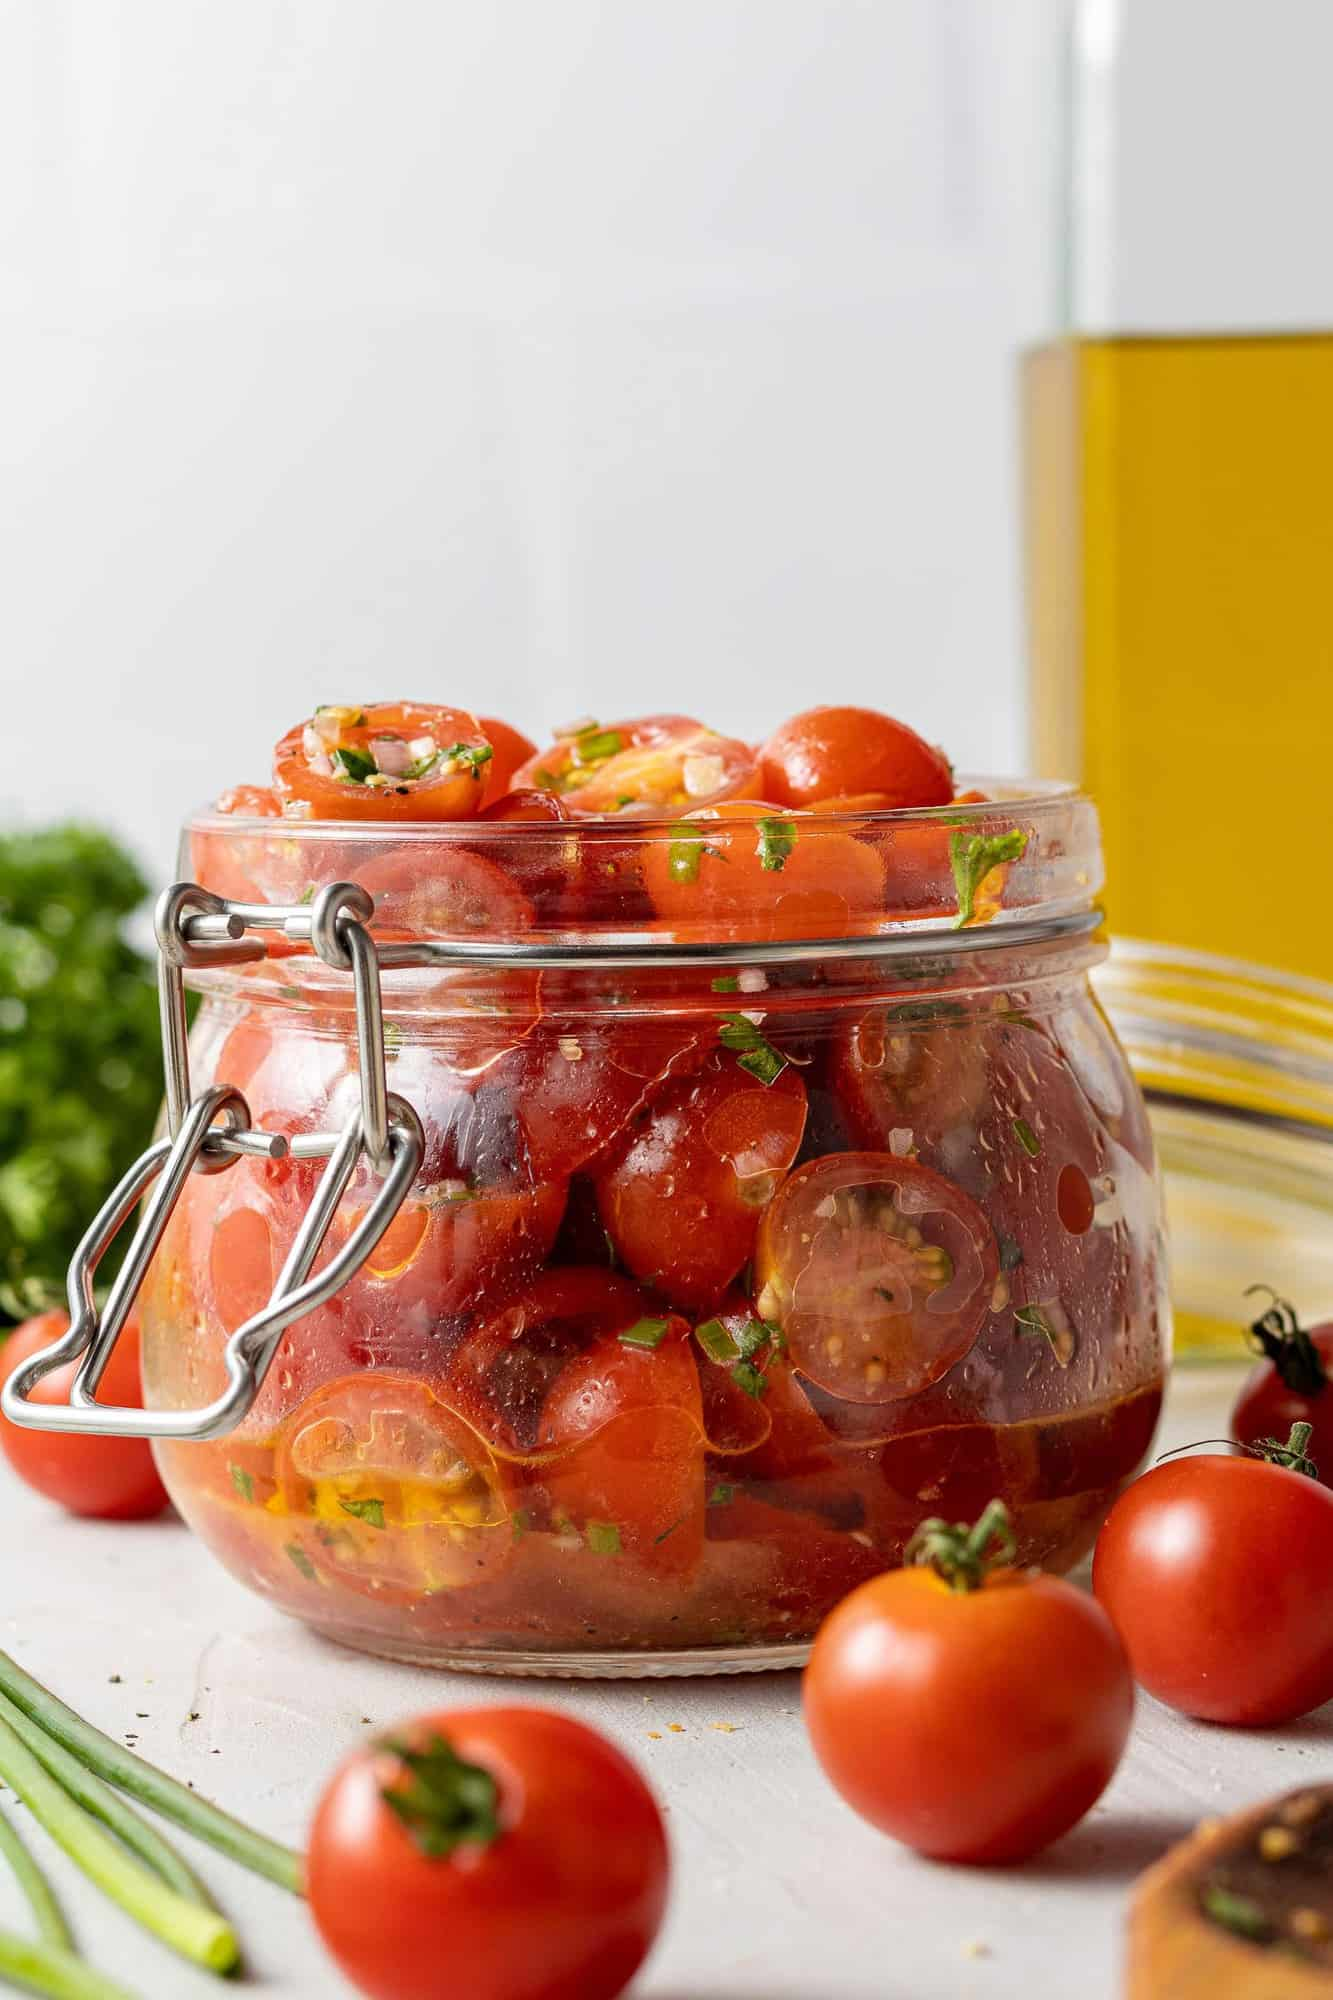 Tomatoes with olive oil and herbs in a small glass jar. Fresh tomatoes in the foreground.